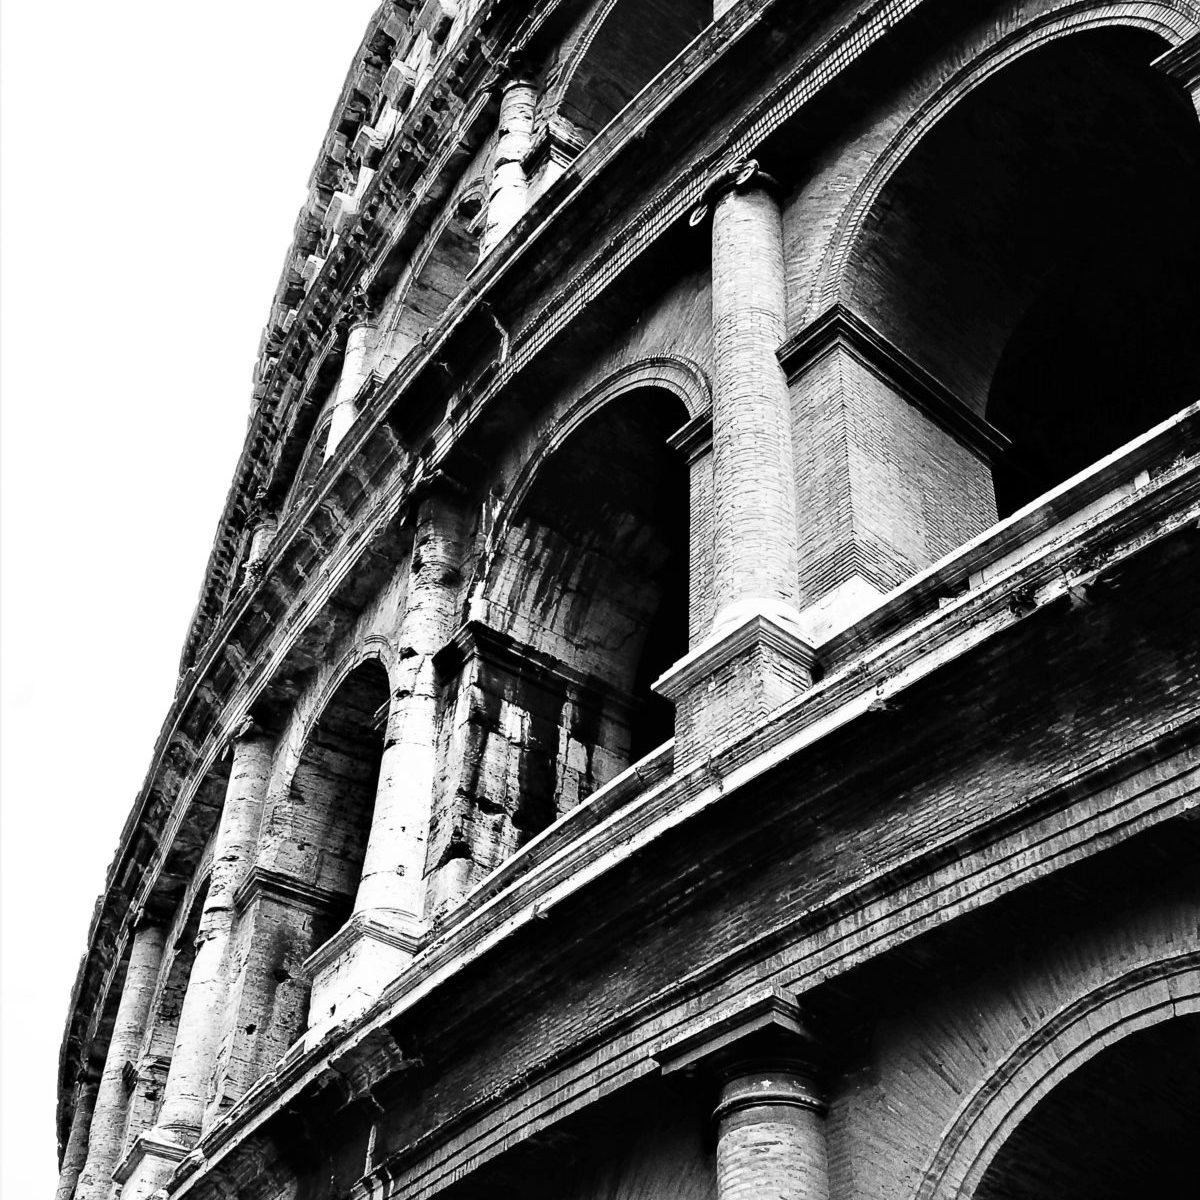 Rome's finest Architecture and historical arena